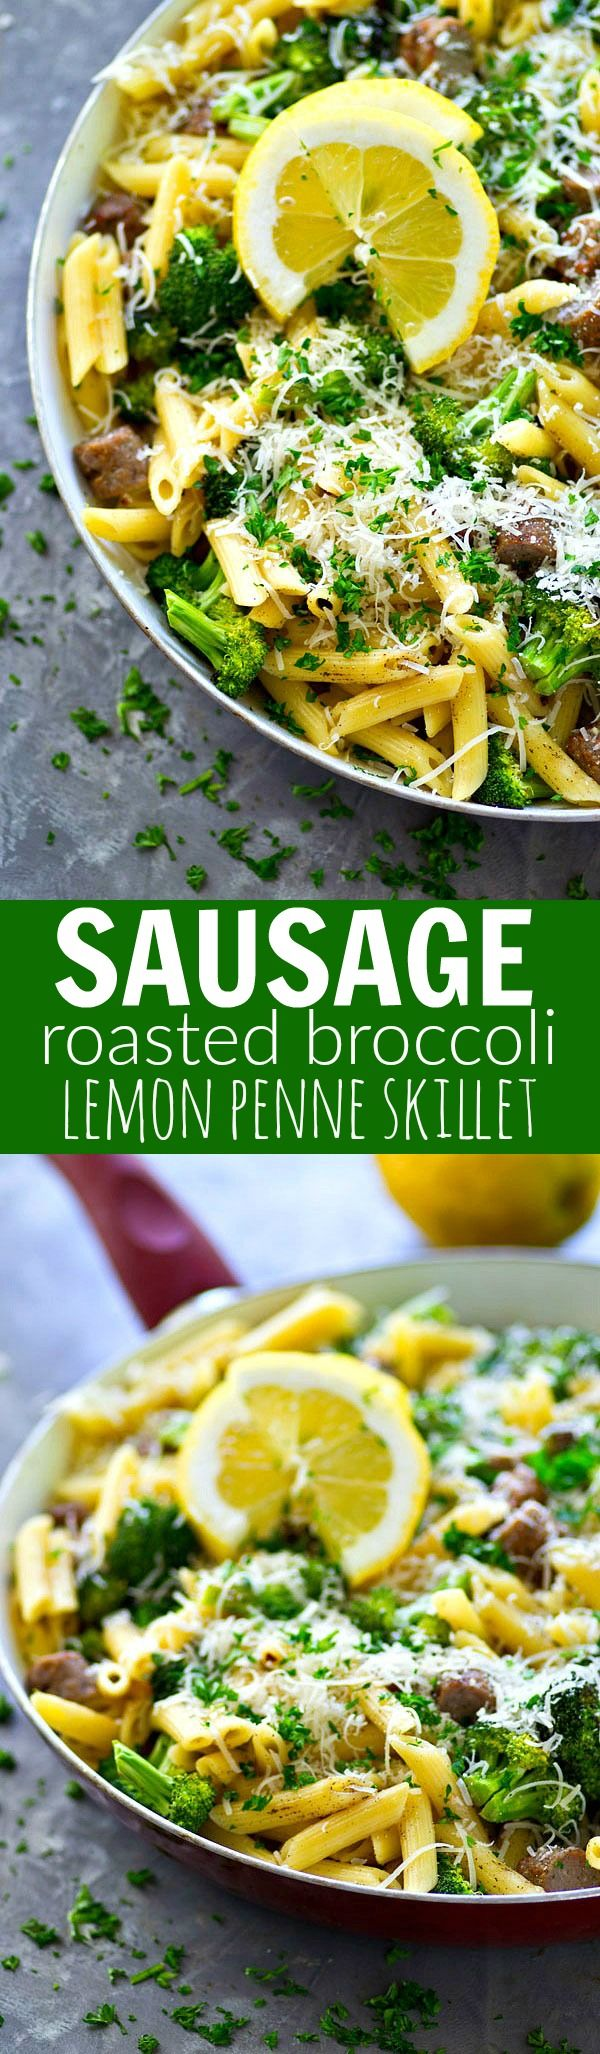 Sausage Roasted Broccoli Lemon Penne Skillet | Recipe | Cheese, Lemon ...